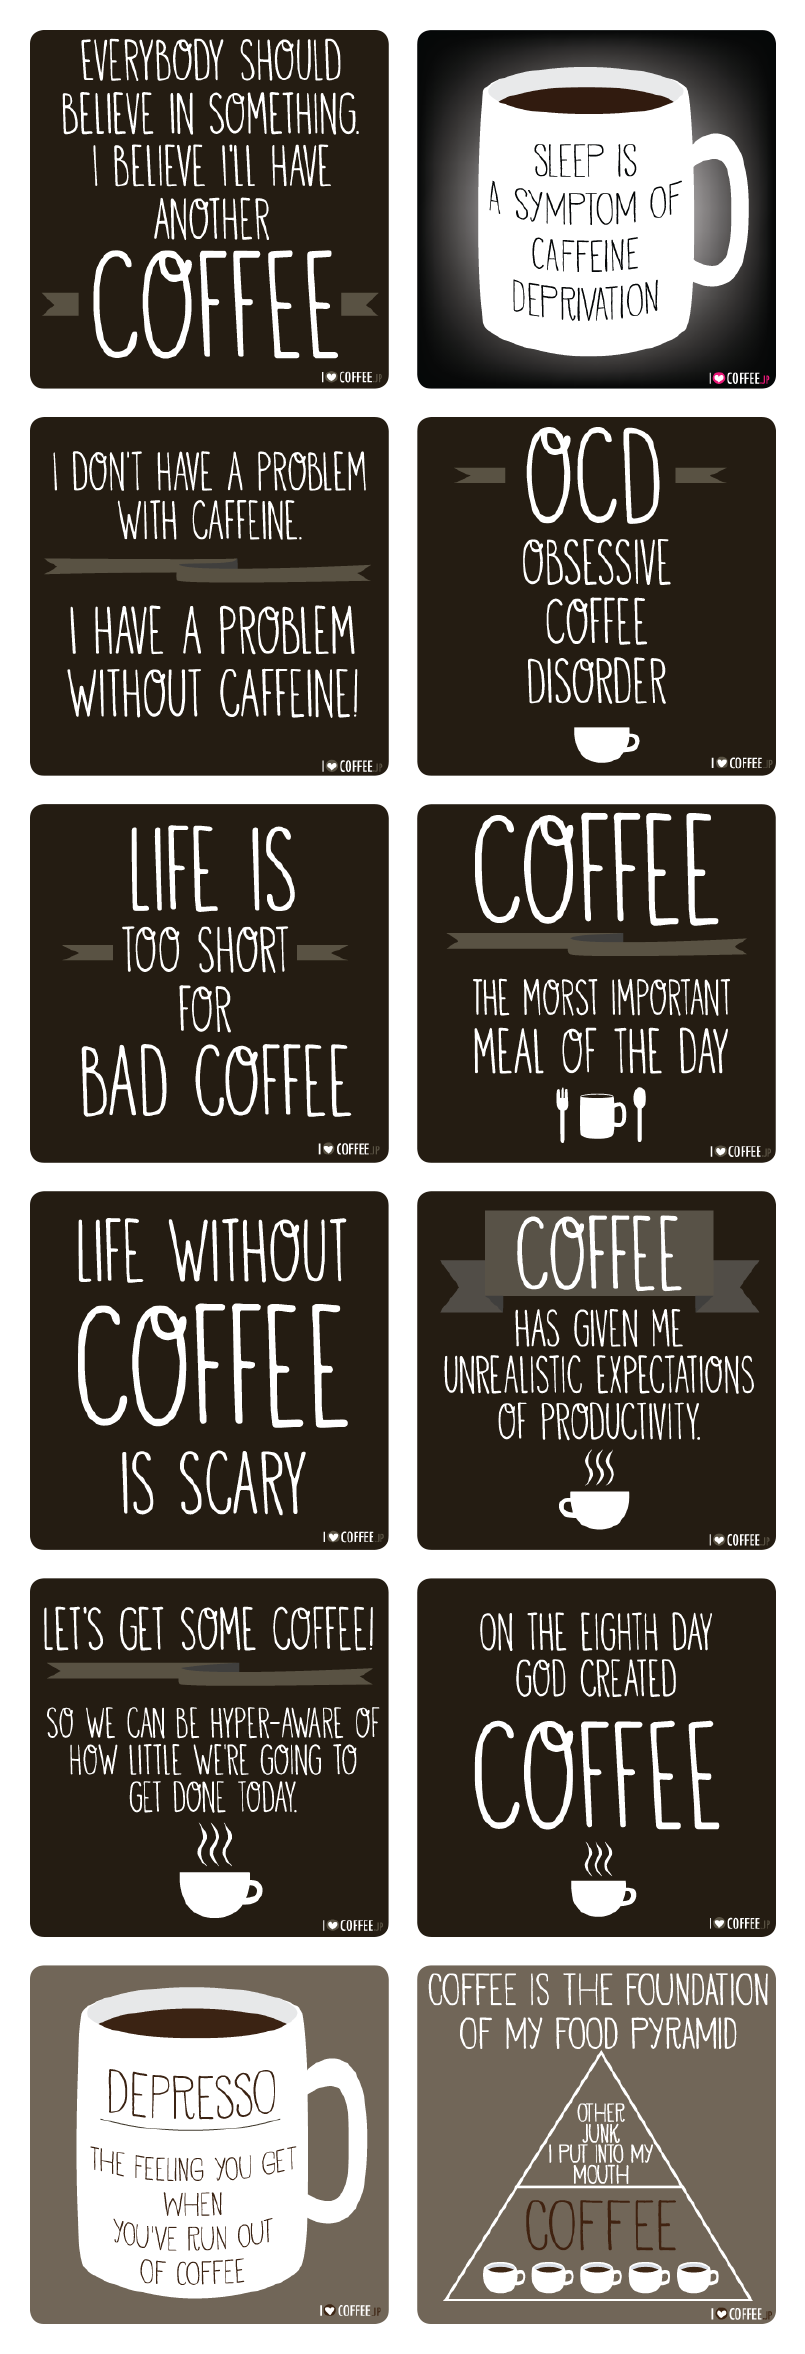 Coffe Quotes From Http En Ilovecoffee Jp Posts View 117 Coffee Quotes Coffee Humor Coffee Obsession